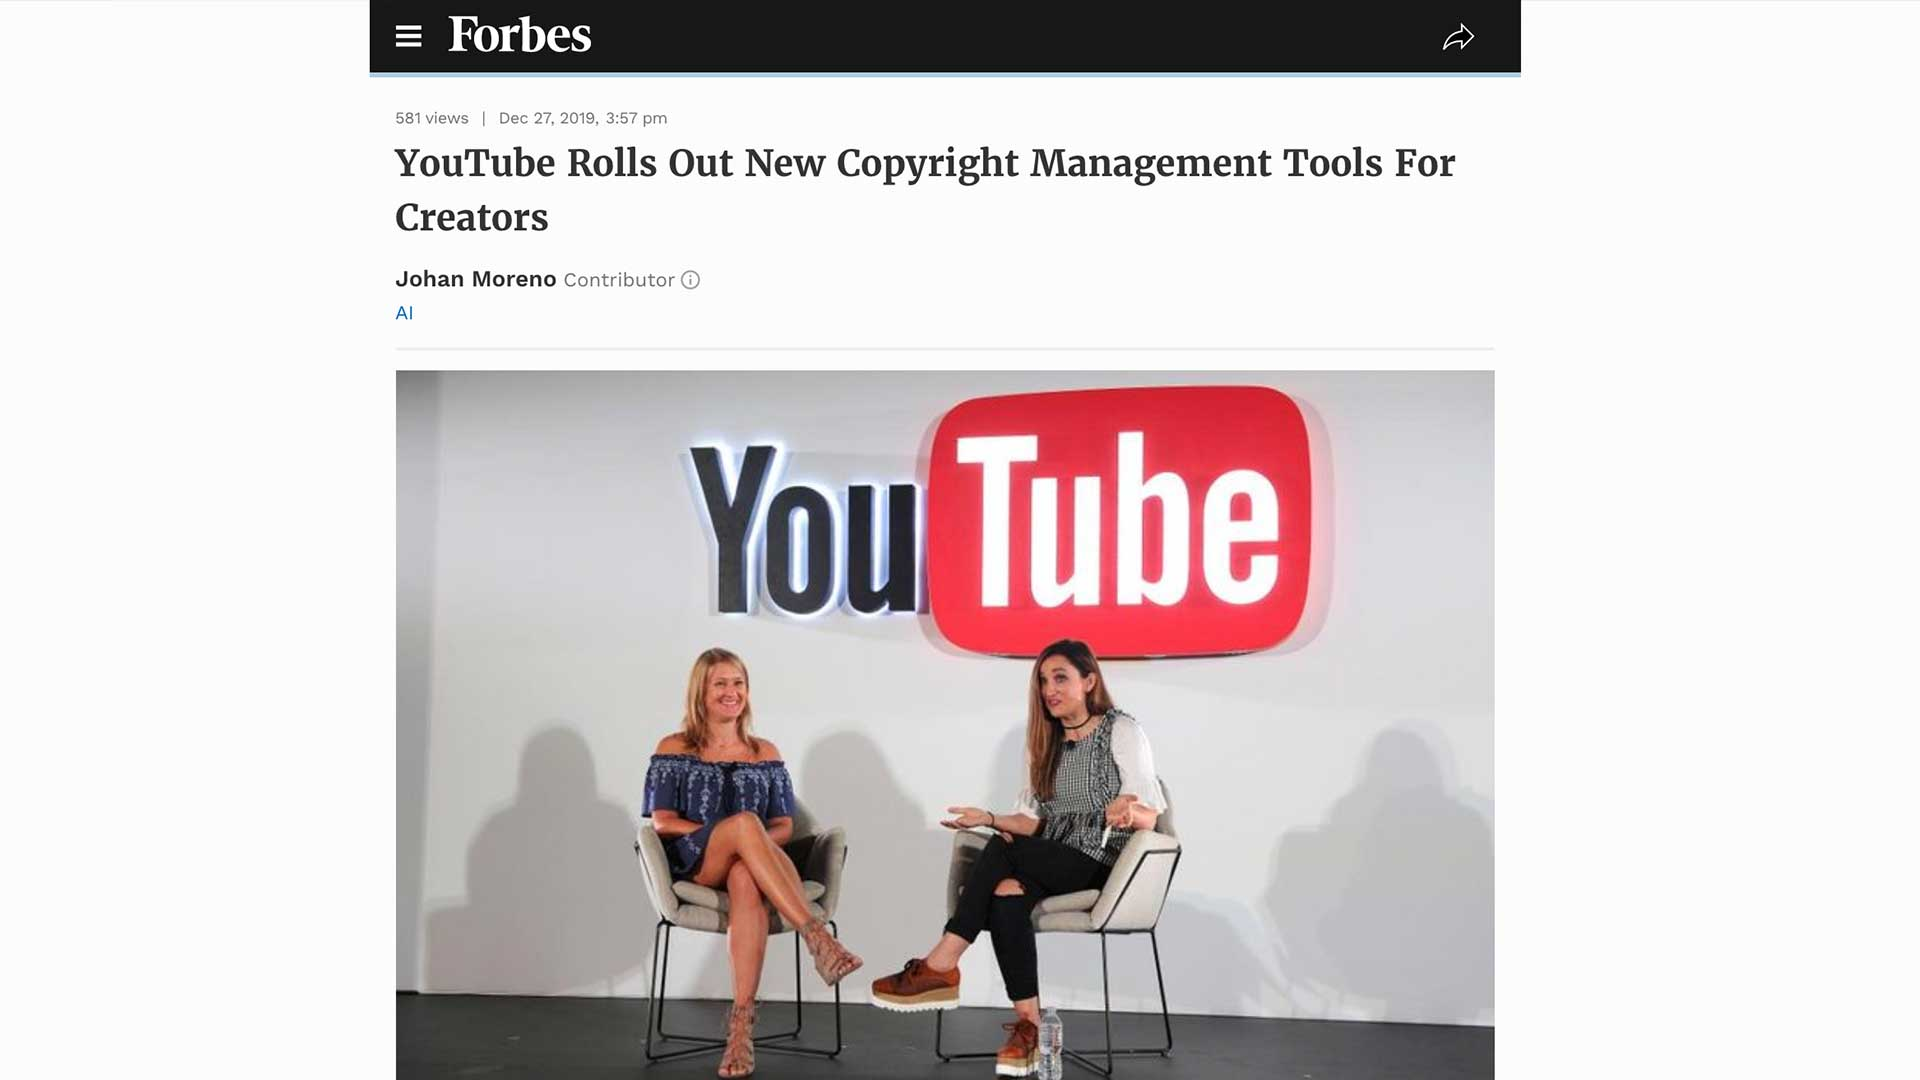 Fairness Rocks News YouTube Rolls Out New Copyright Management Tools For Creators